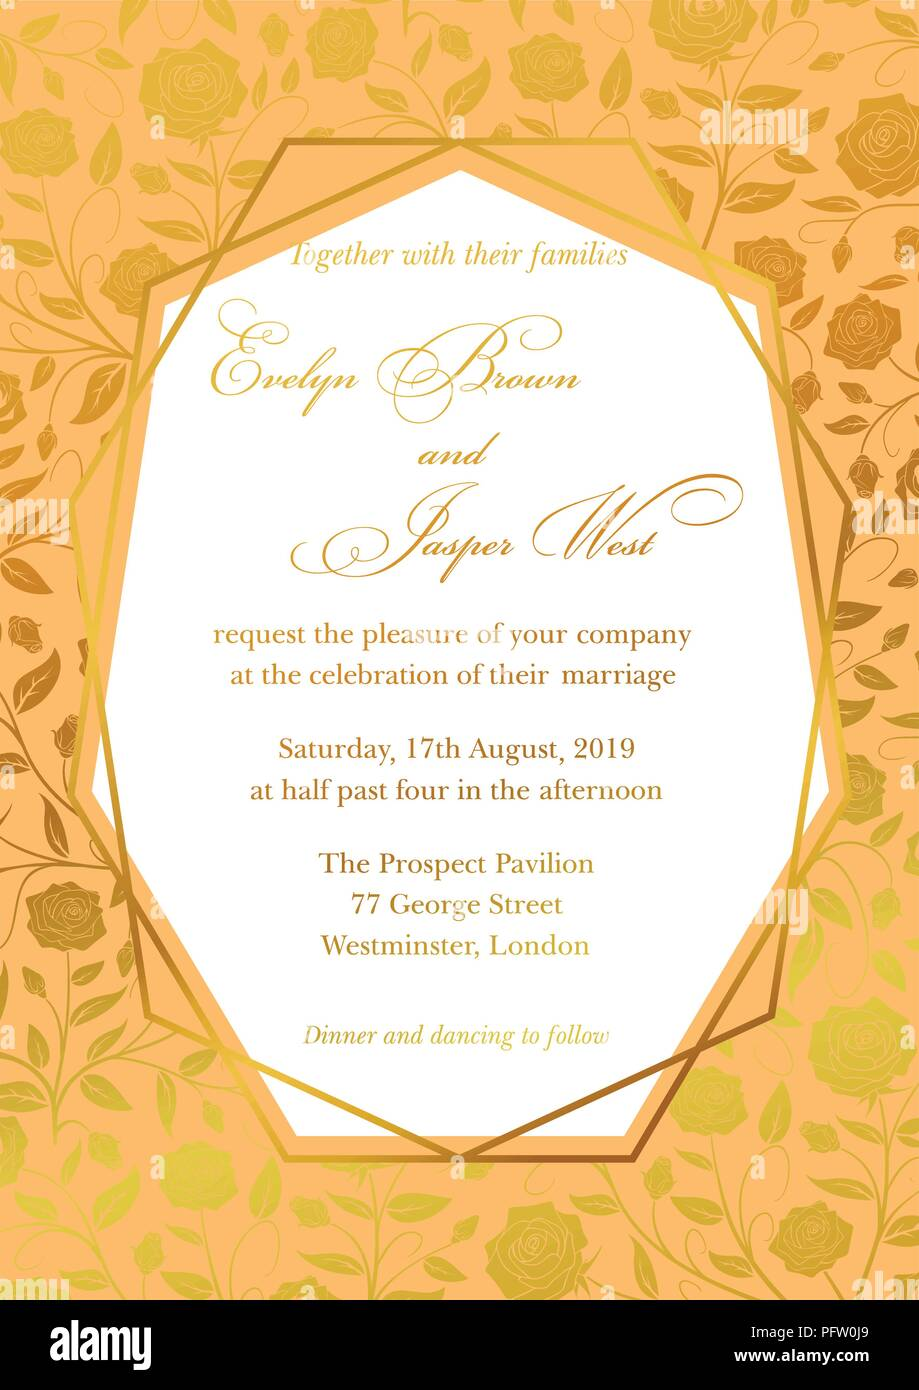 Royal Invitation Stock Vector Images - Alamy